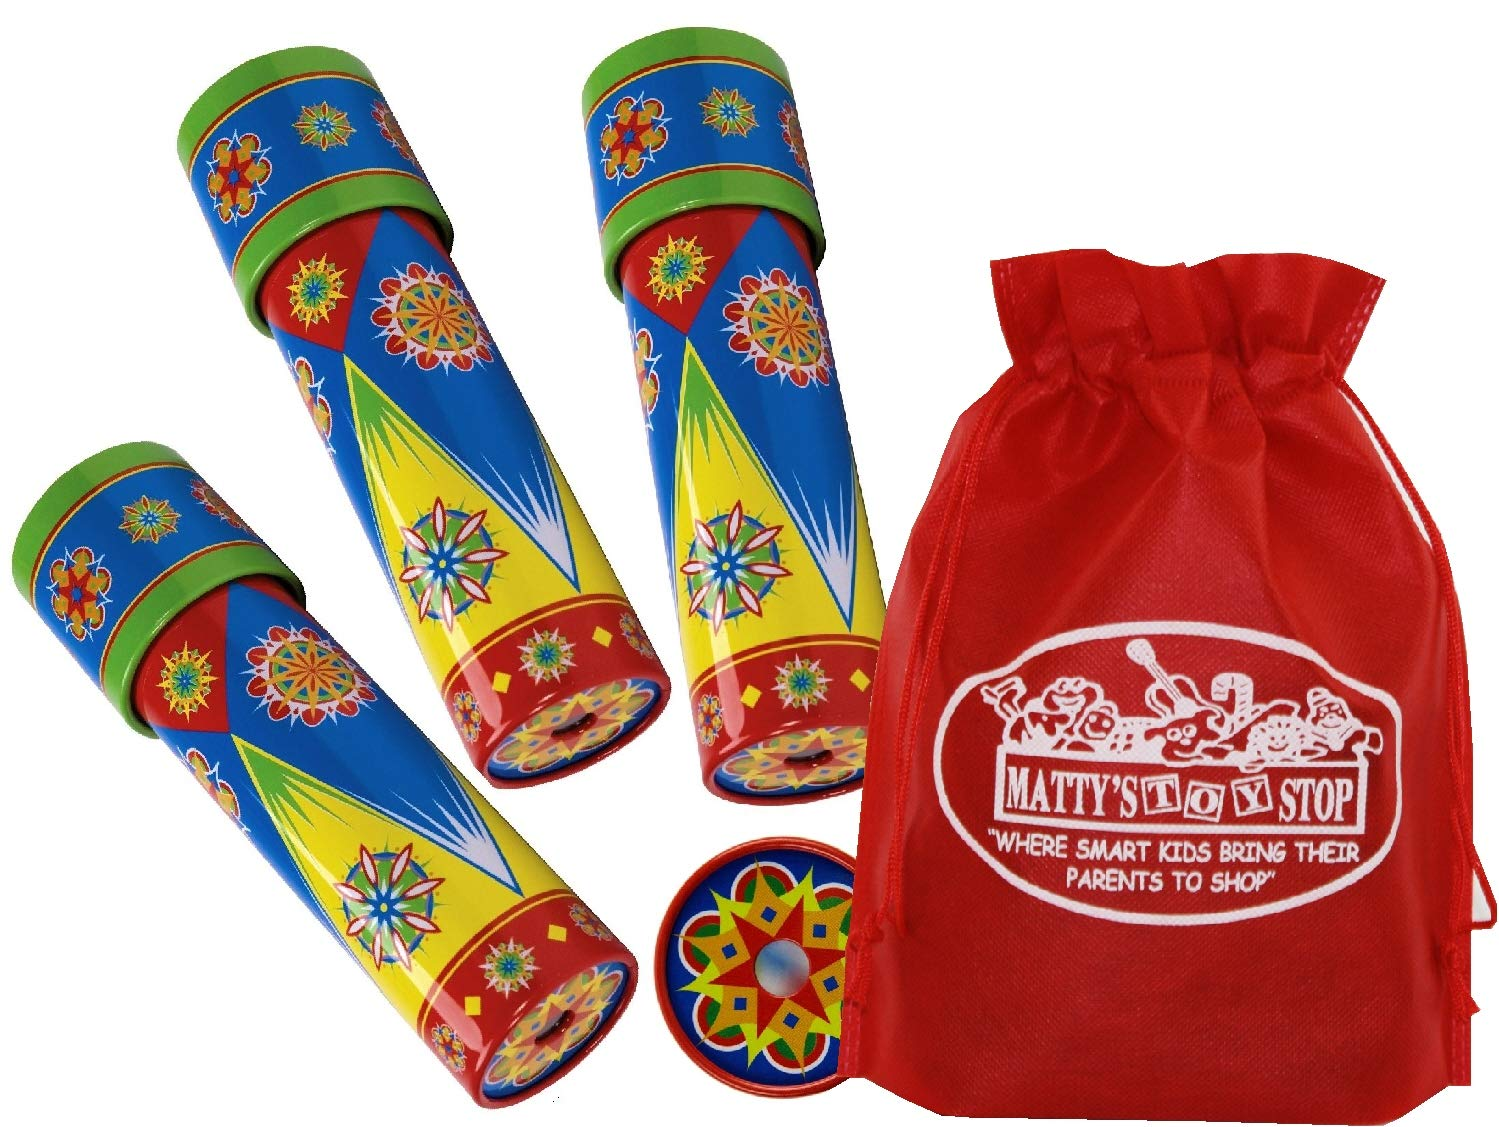 Schylling Classic Tin Kaleidoscope Party Set Bundle Includes Exclusive Matty's Toy Stop Storage Bag - 3 Pack by Schylling